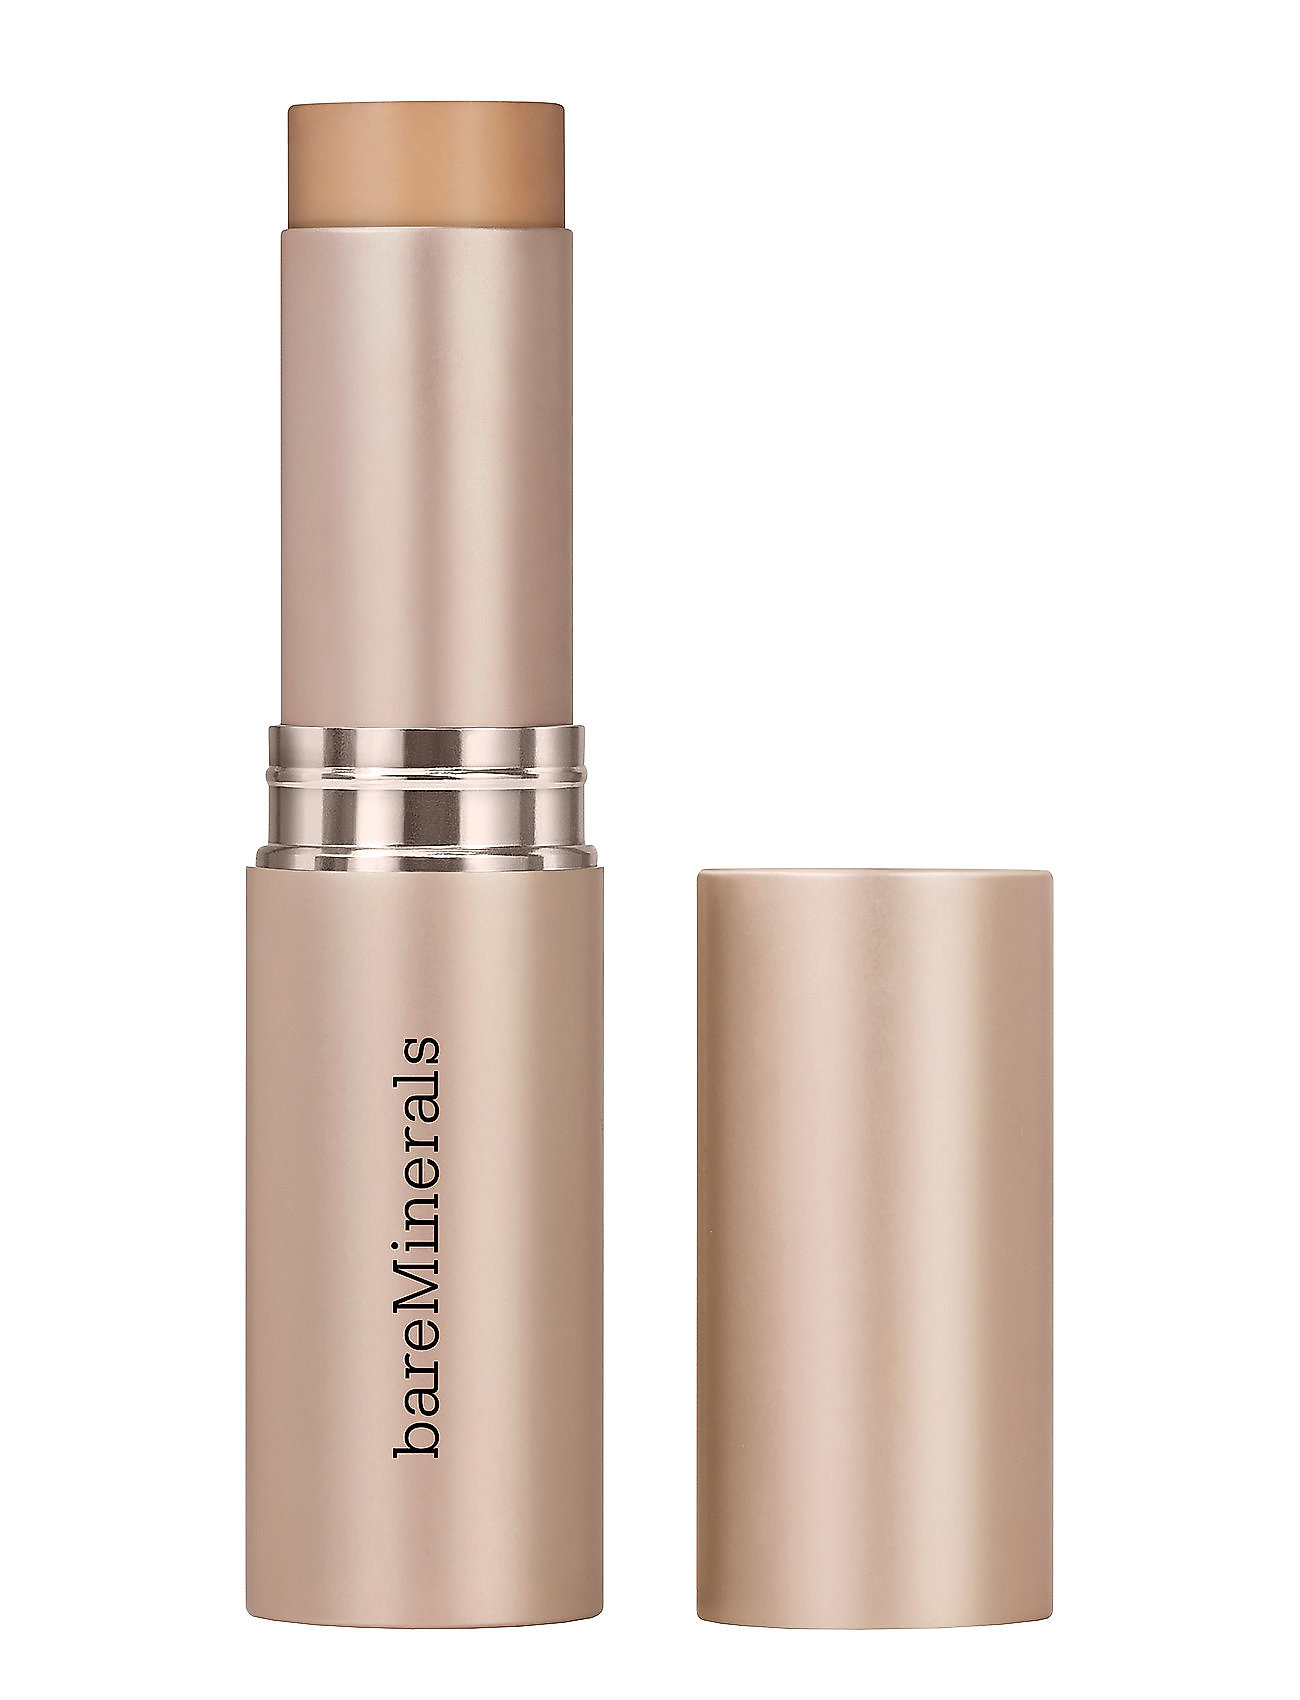 Image of Complexion Rescue Hydrating Foundation Stick Spf 25 Foundation Makeup BareMinerals (3307690673)